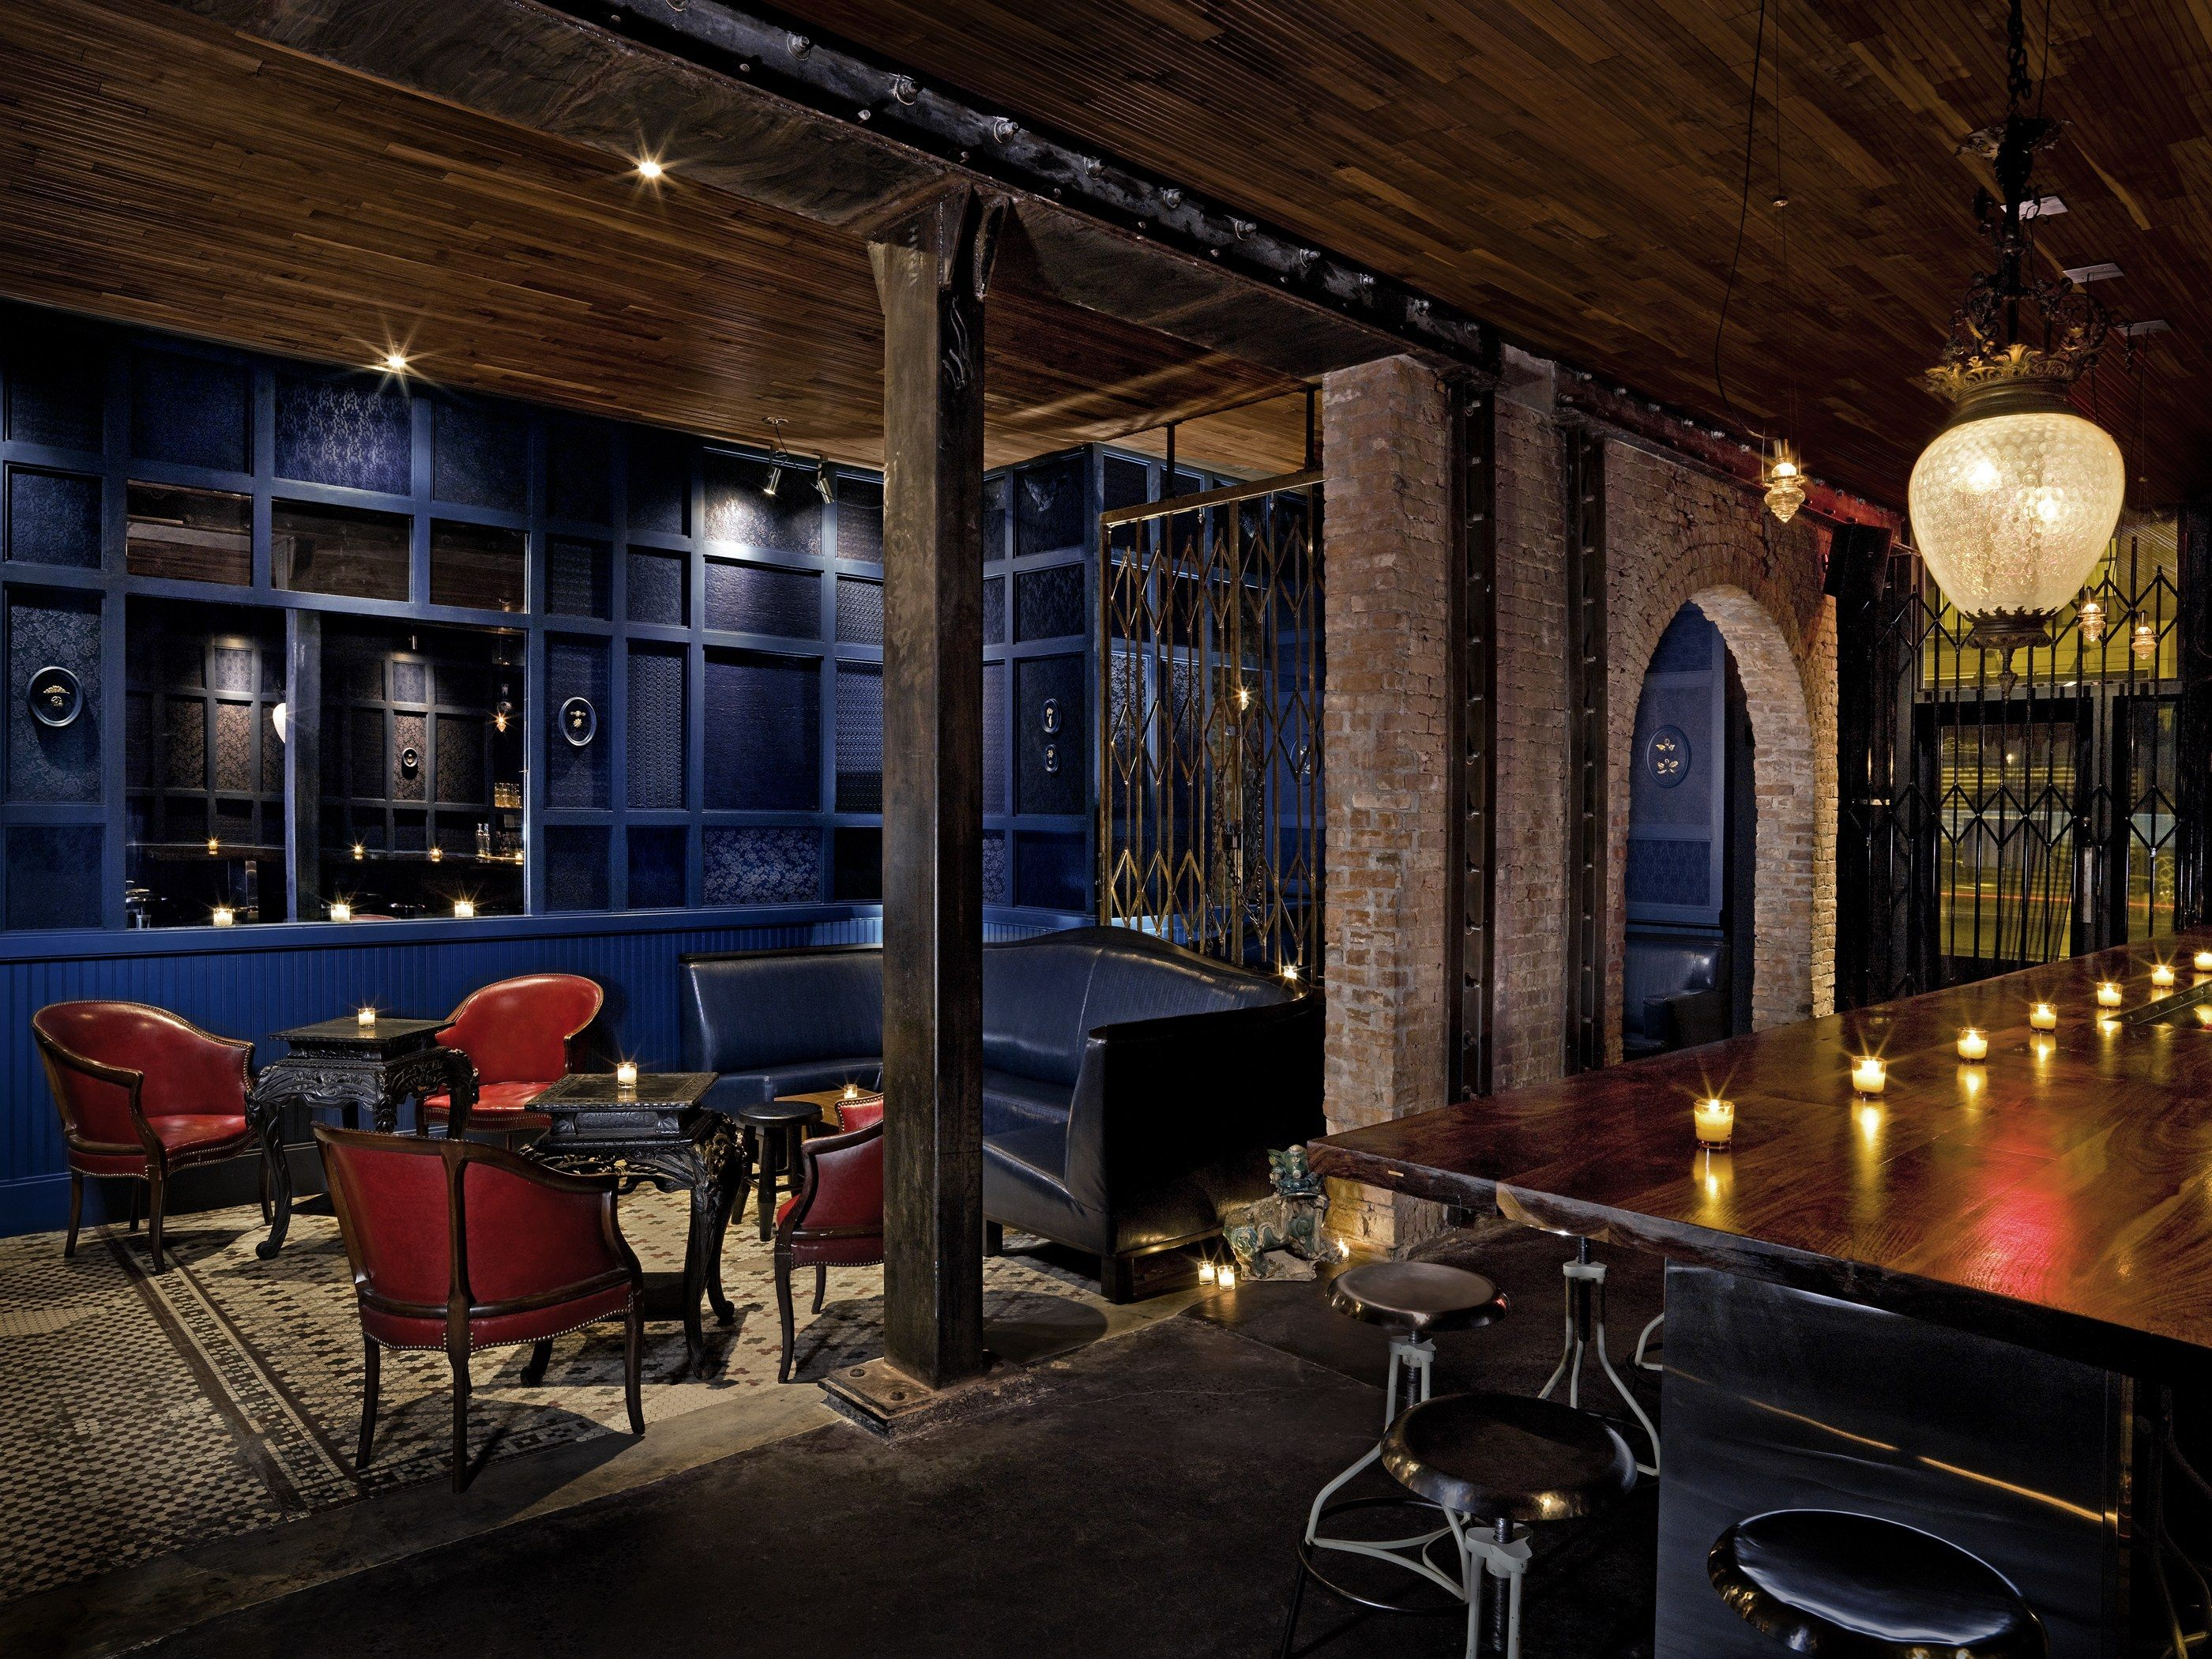 15 Chic New York City Bars for Design Lovers | Architectural digest ...